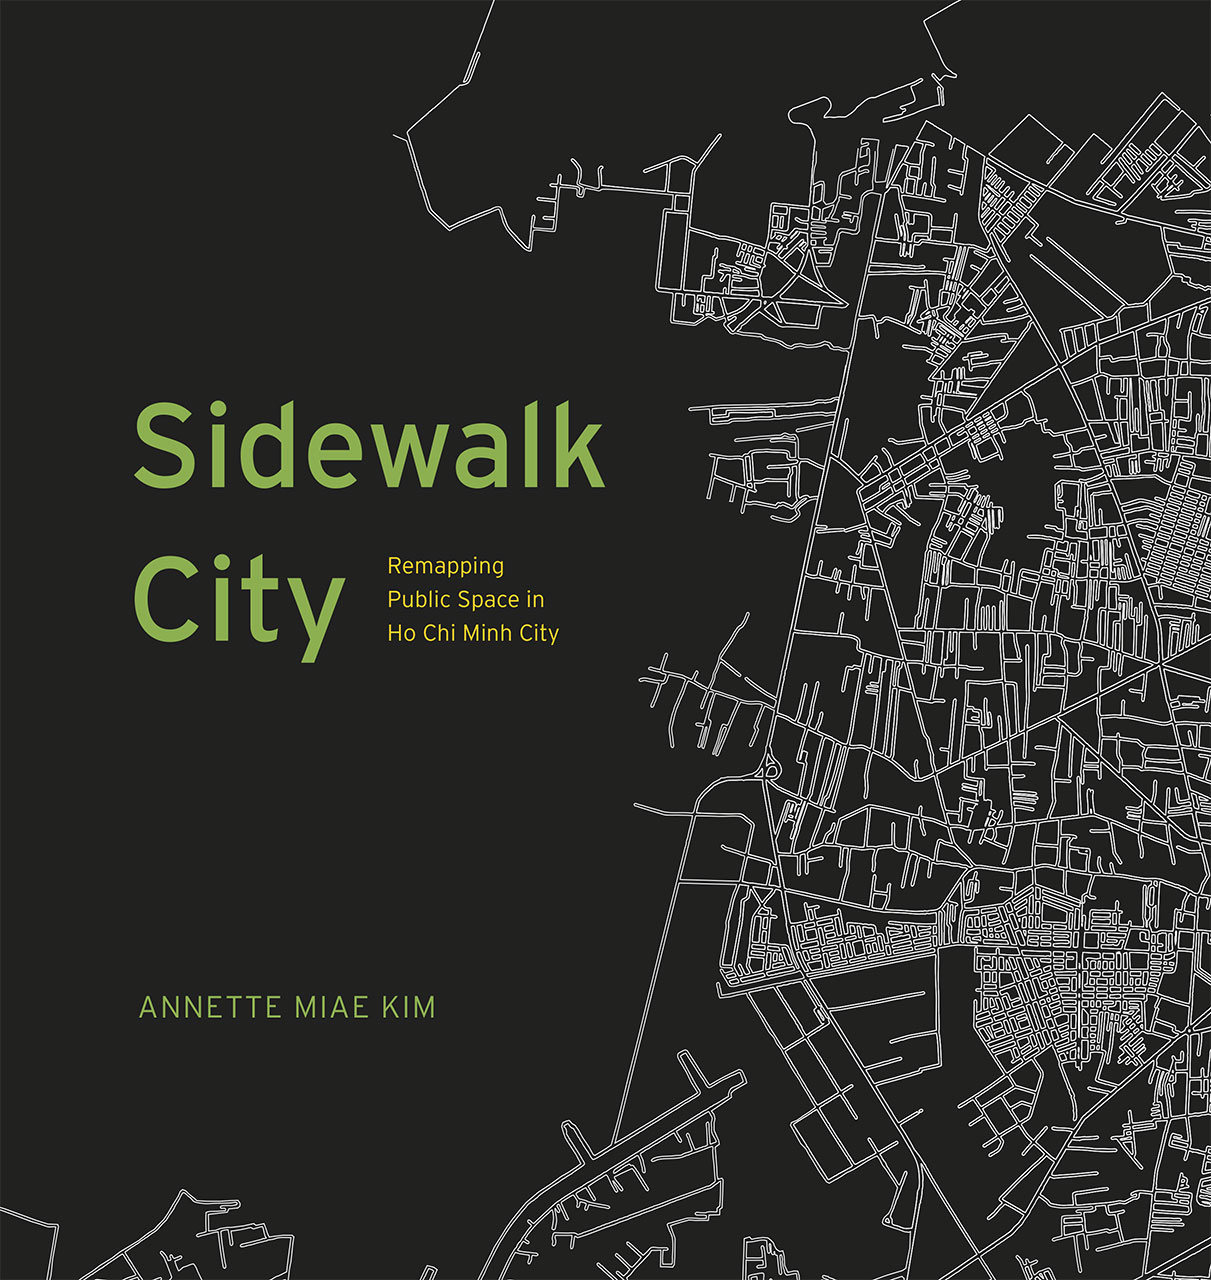 Sidewalk City